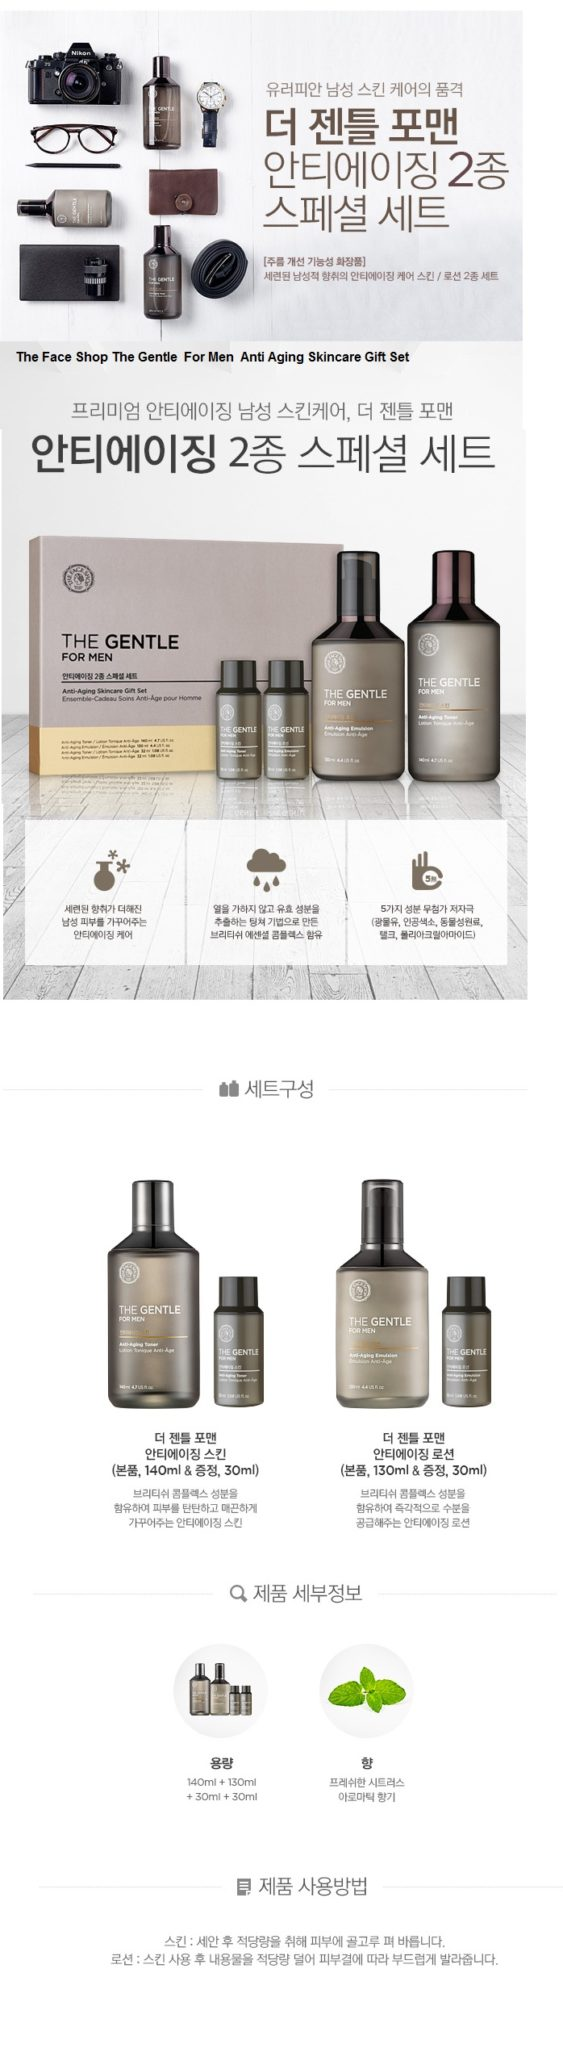 The Face Shop The Gentle For Men Anti Aging Skincare Gift Set